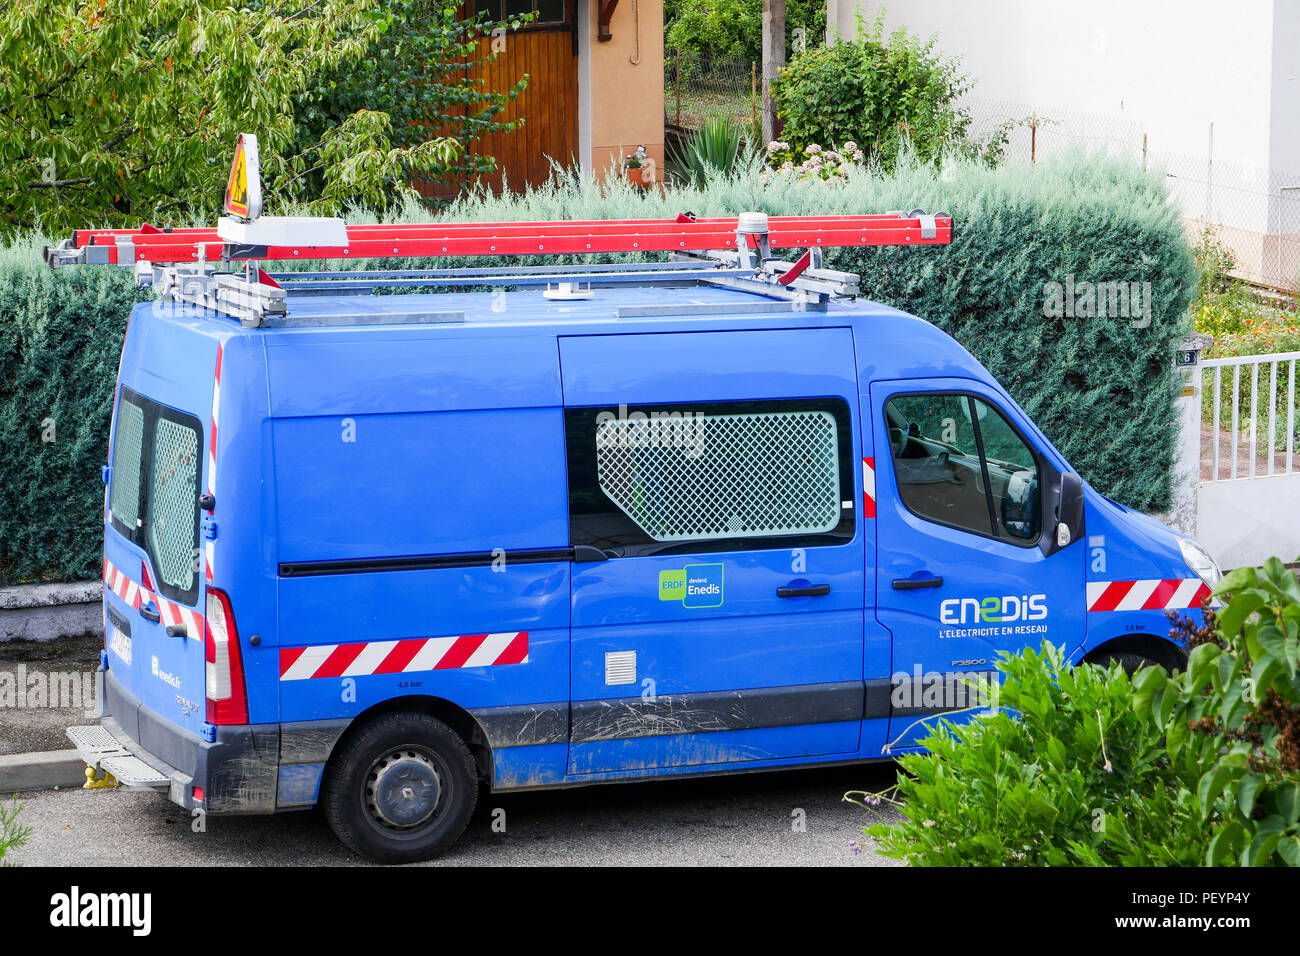 Enedis electricity company team at work in a residential area, Lyon, France - Stock Image